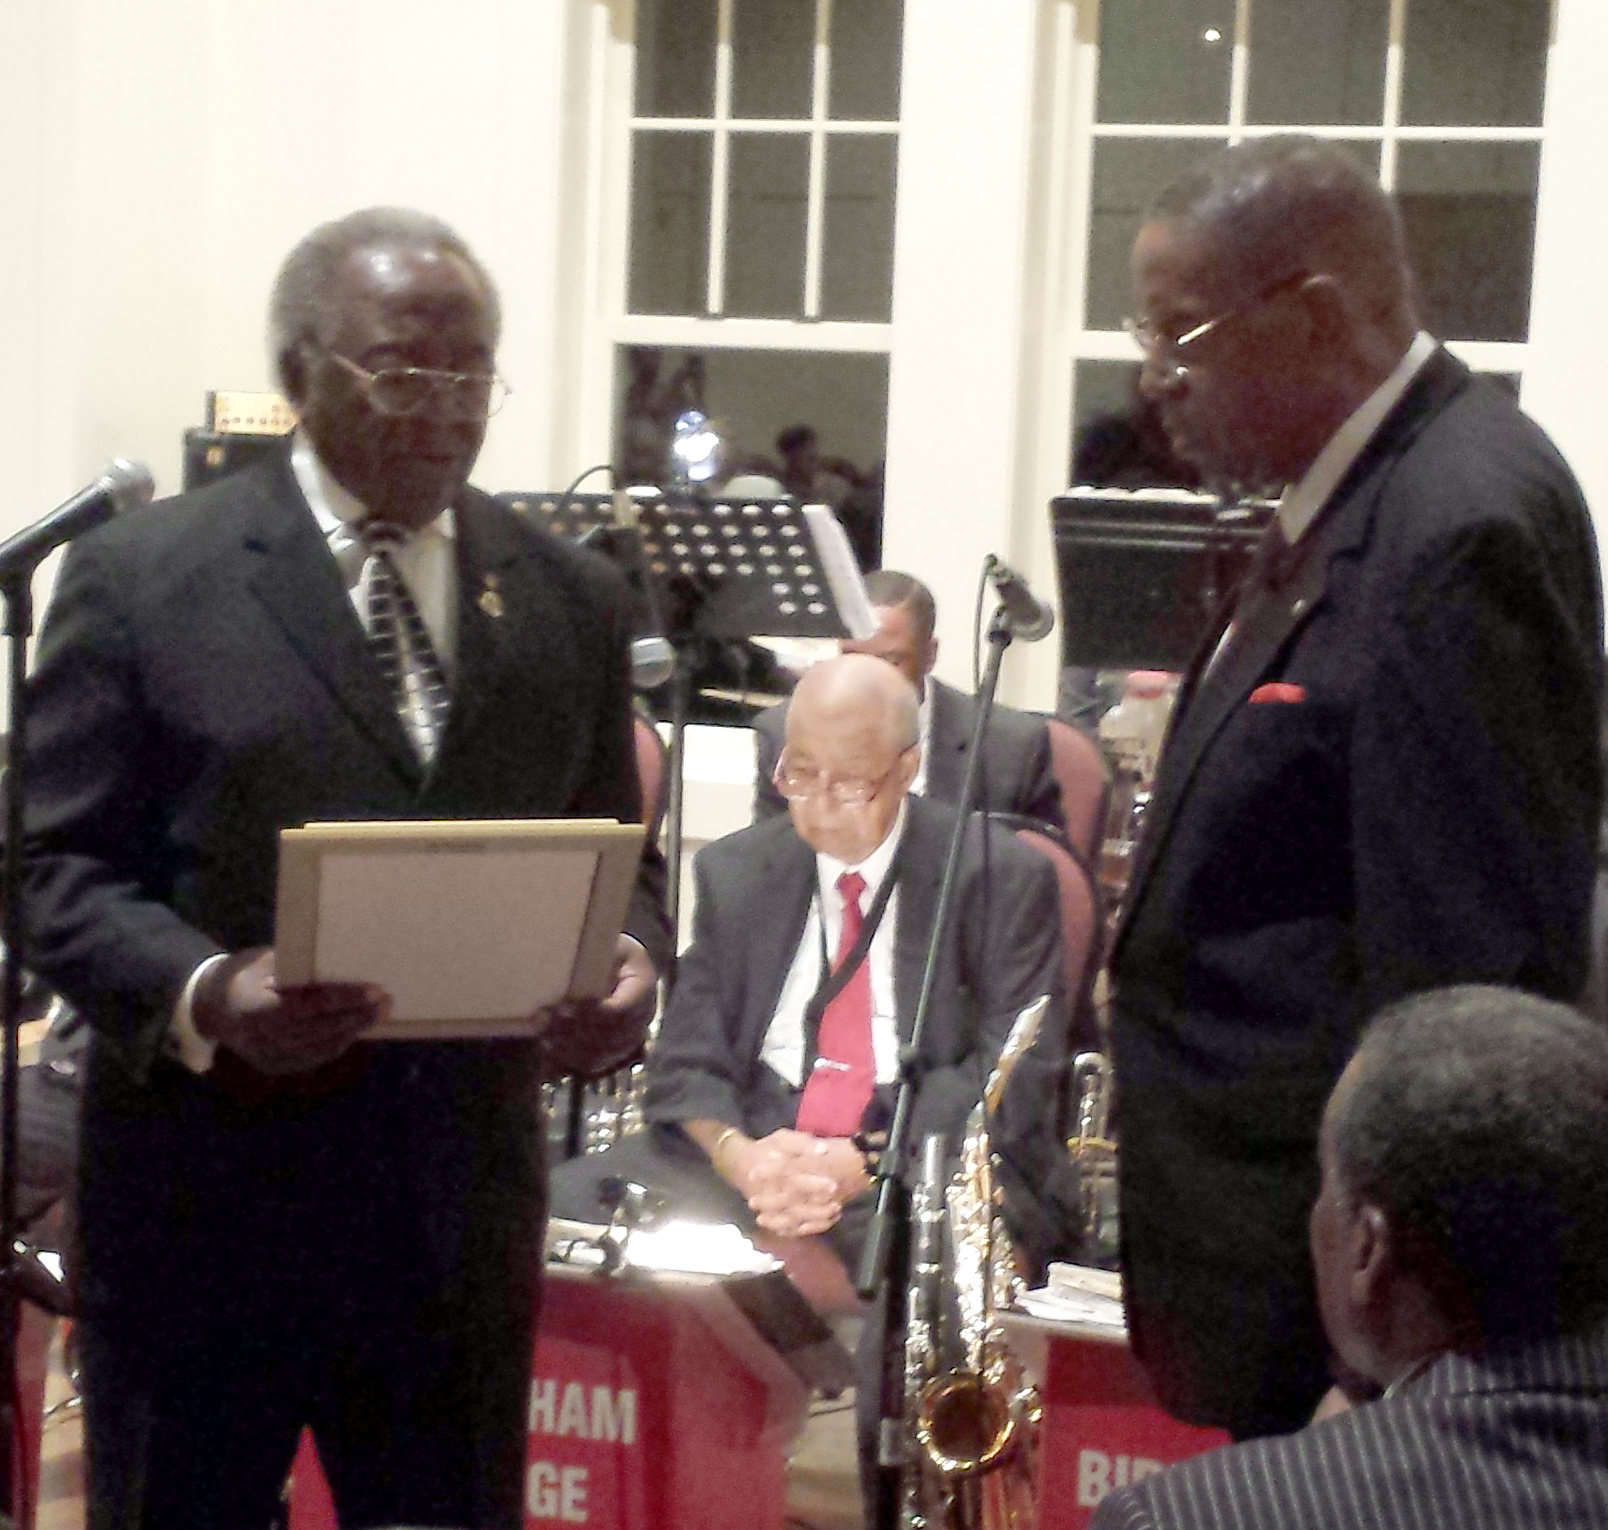 Richard Showers, Huntsville City Council member, honors Tolton Rosser, band leader for Birmingham Heritage Band